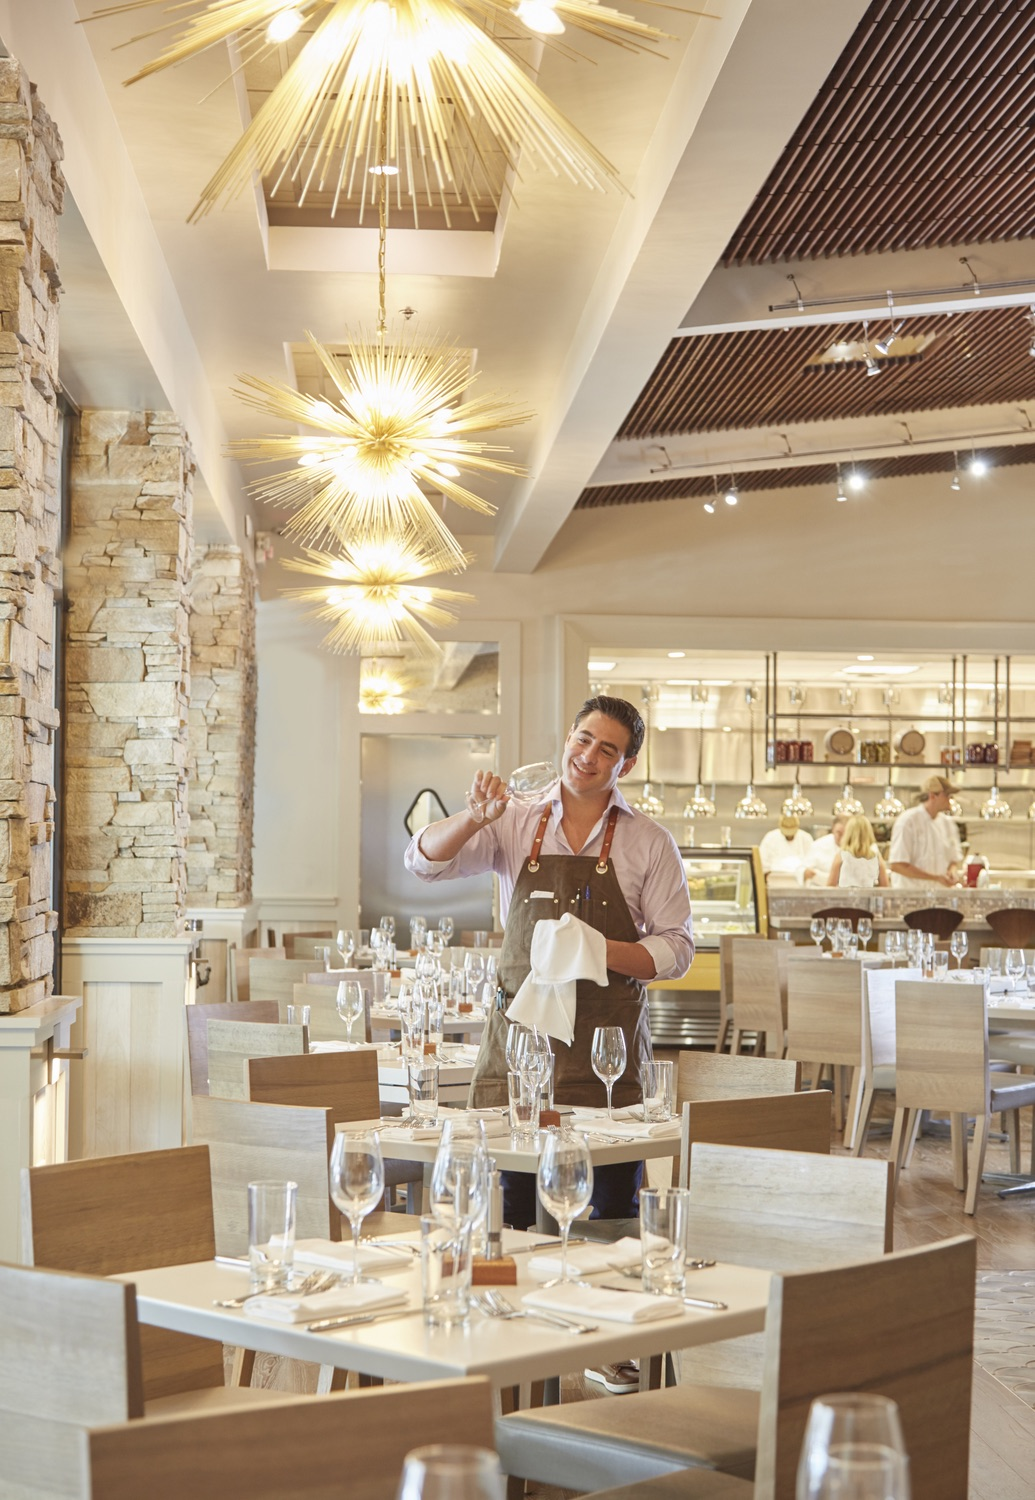 Emeril Lagasse's Coast Italian Restaurant Interior - Lovelace Interiors